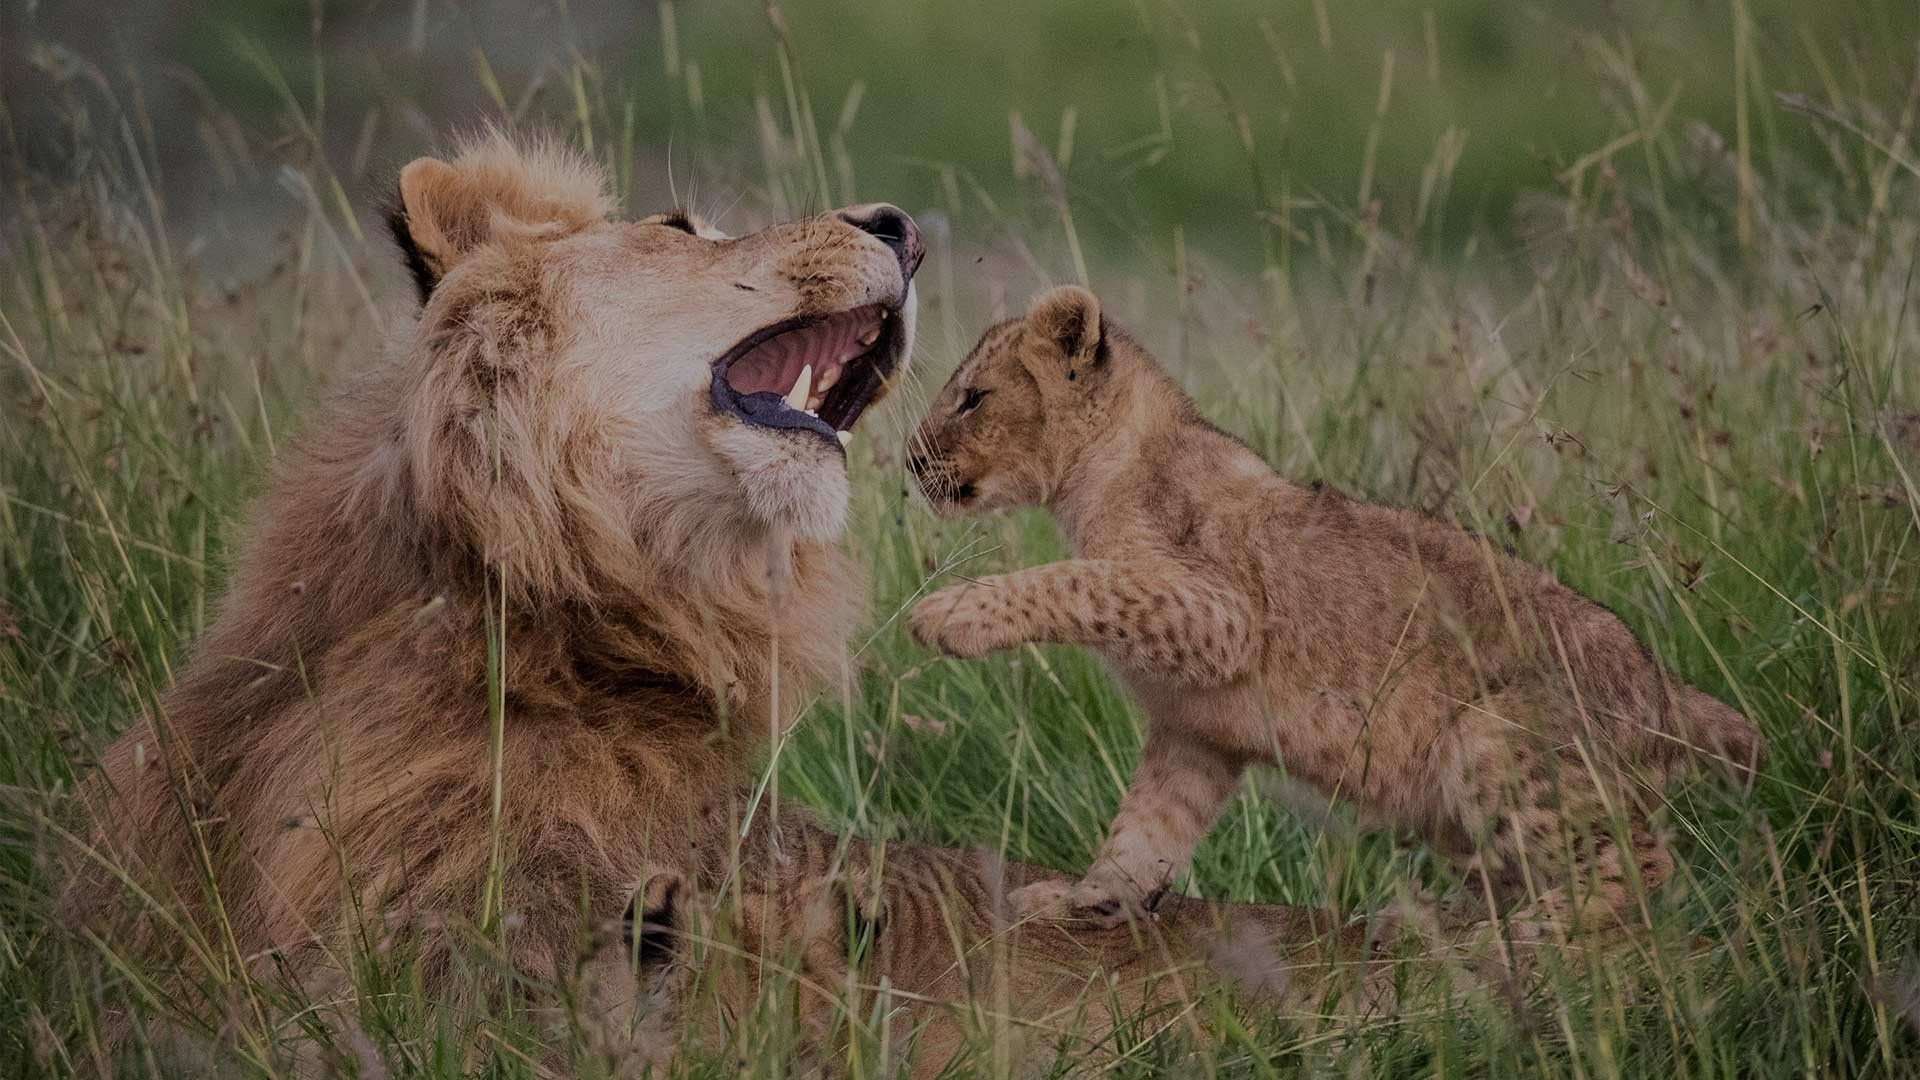 A lion cub clambers over an adult male lion lying in long grass, who raises his head in a mock roar.